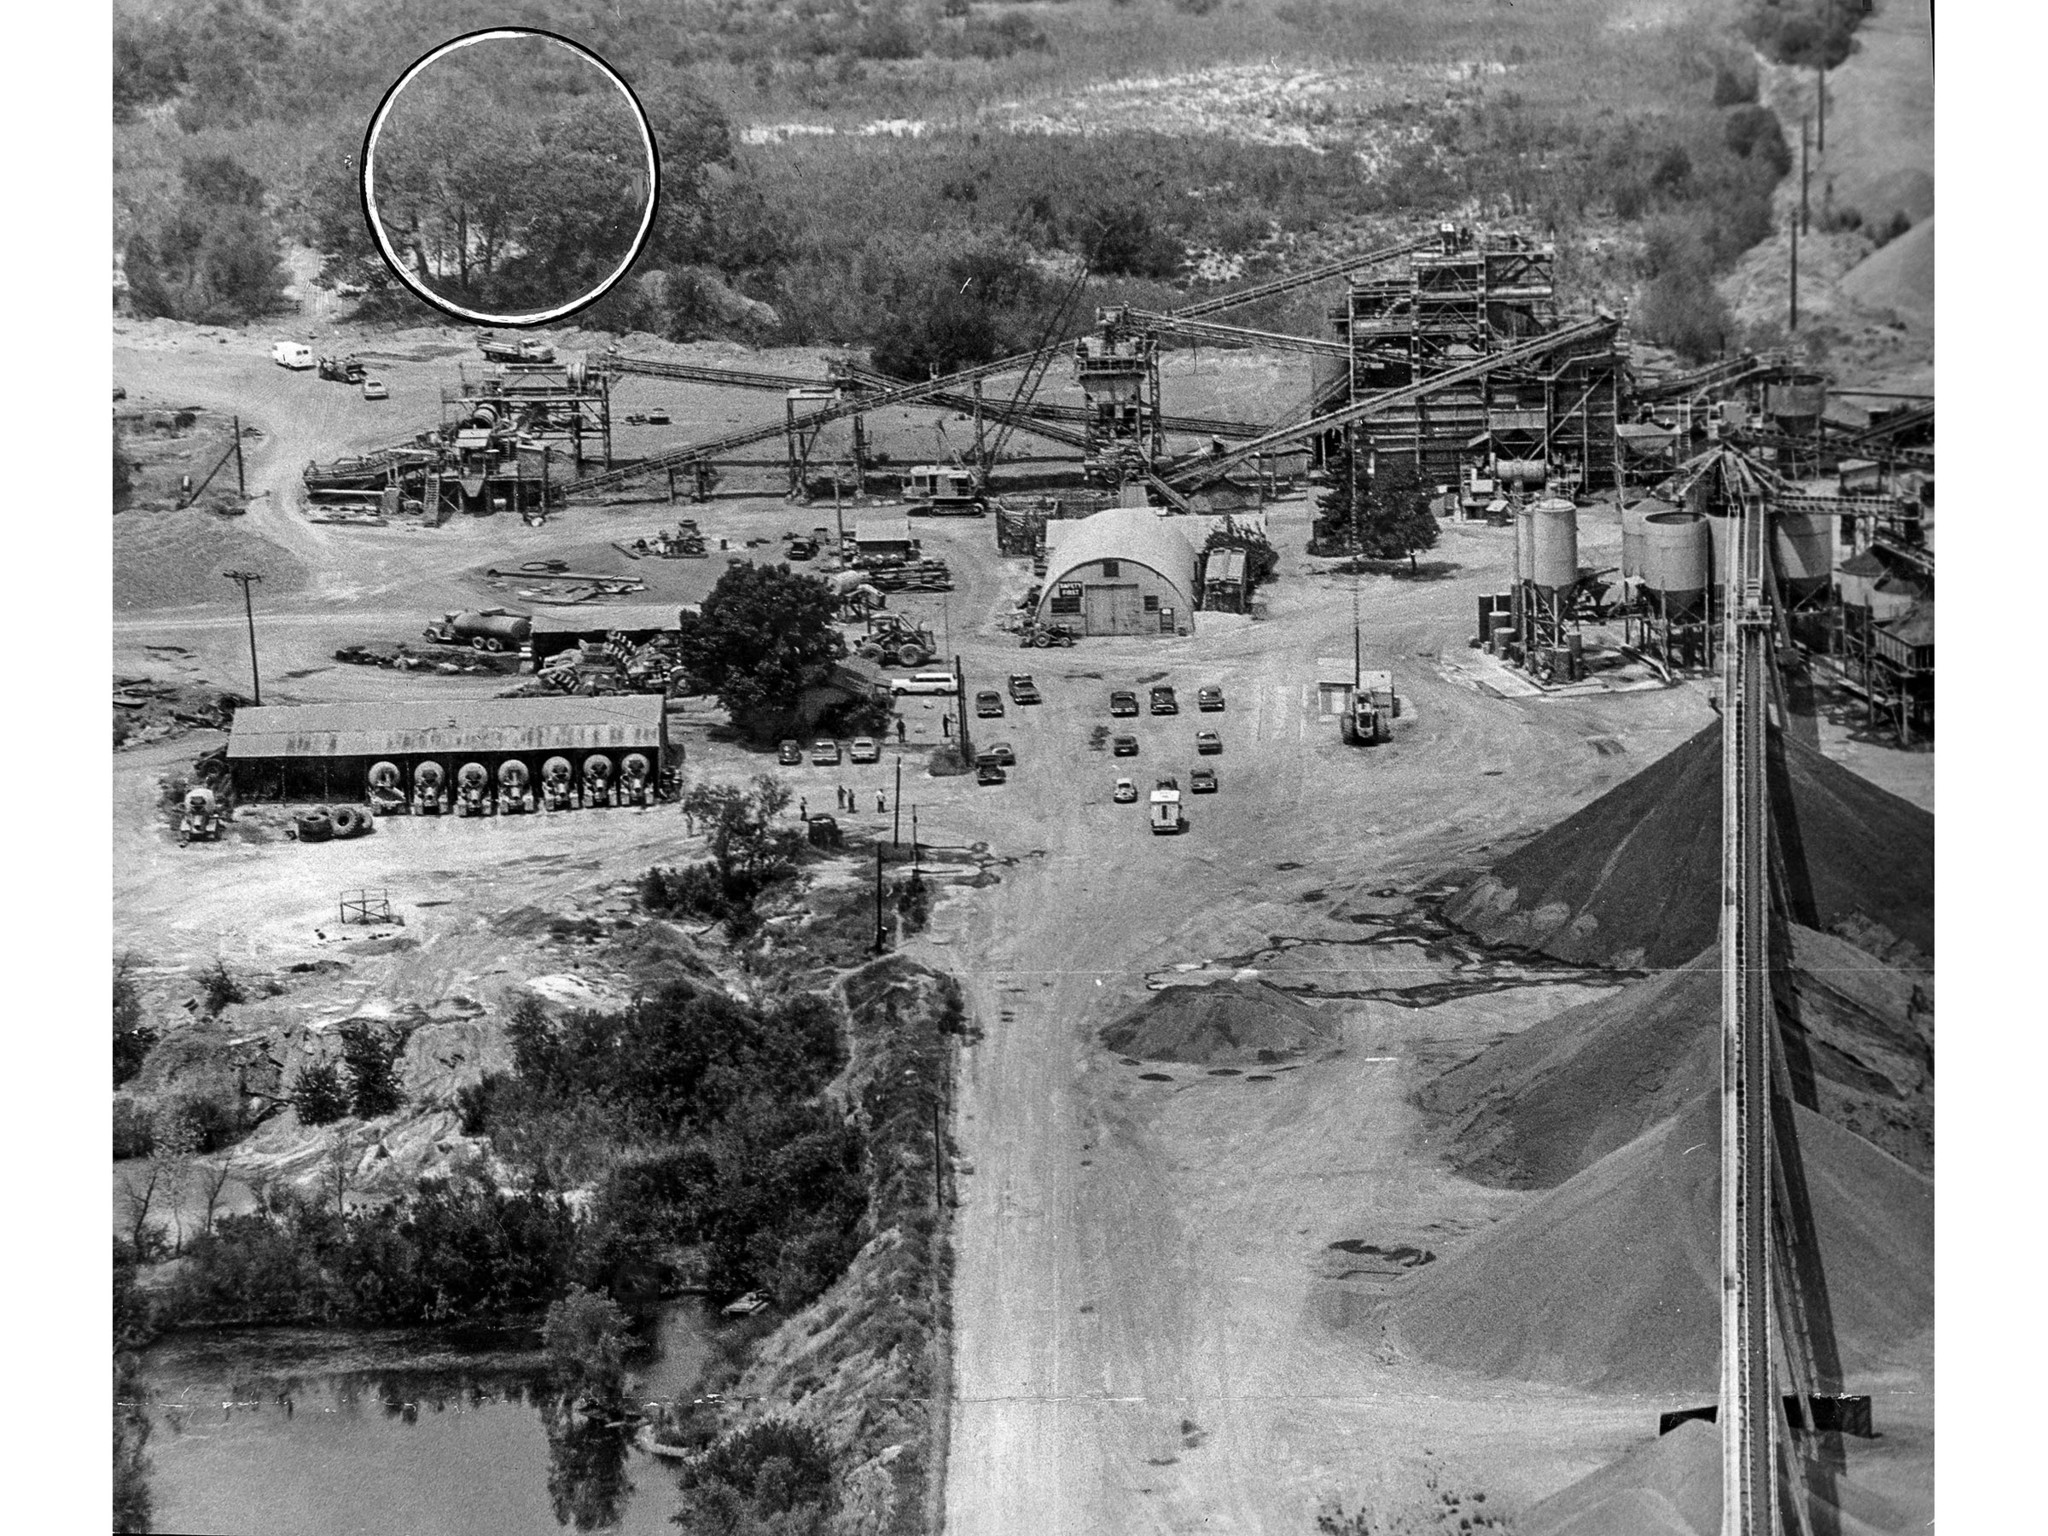 July 17, 1976: Rock quarry in Livermore, California, where kidnapped children and their bus driver w